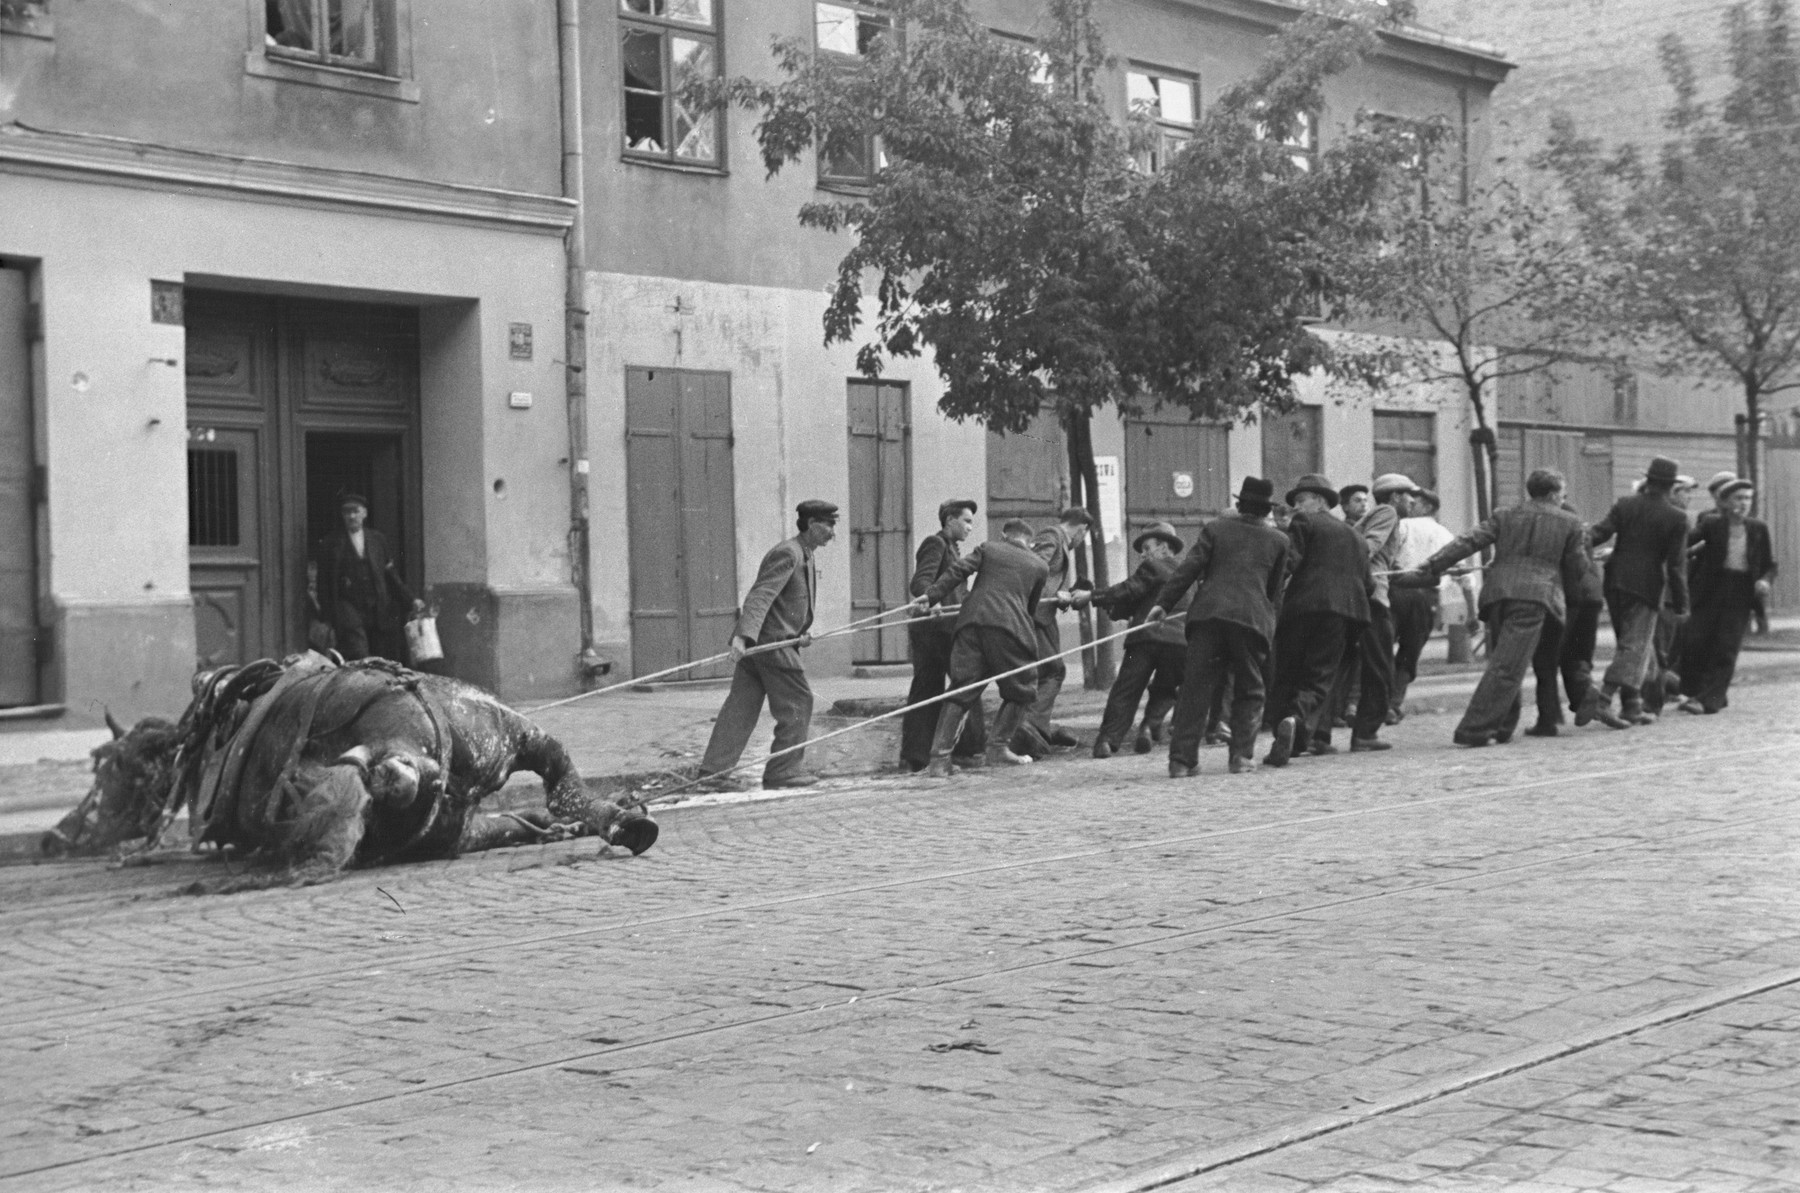 A group of Polish men drag the carcass of a horse through the streets of Warsaw during the siege of the capital.